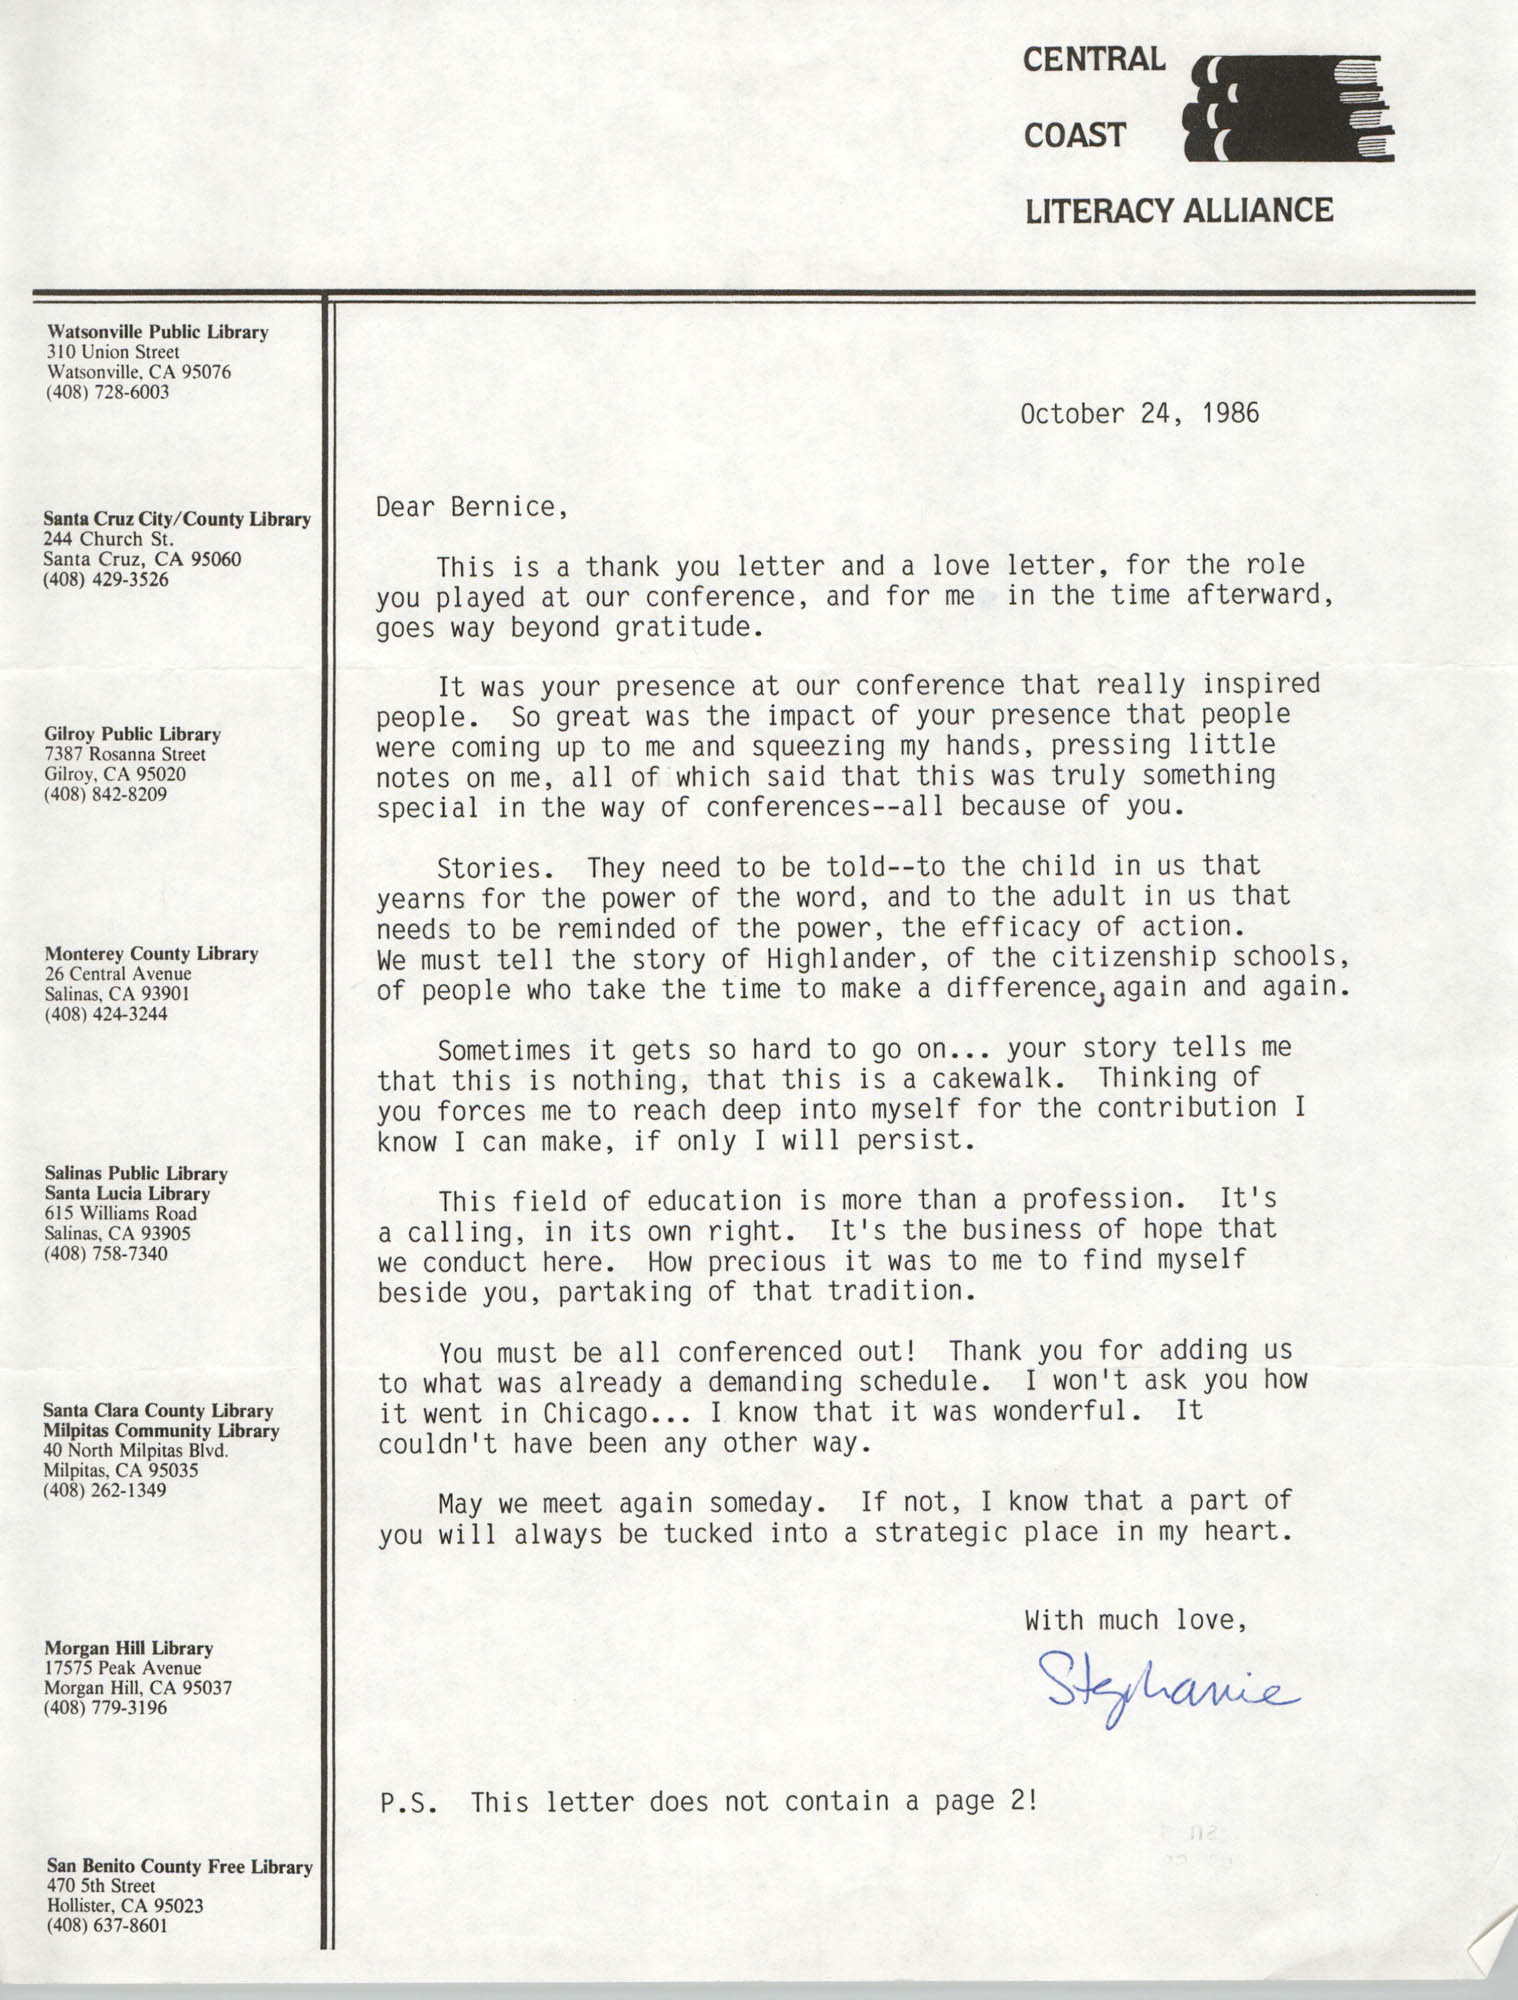 Letter from Stephanie Smith to Bernice Robinson, October 24, 1986